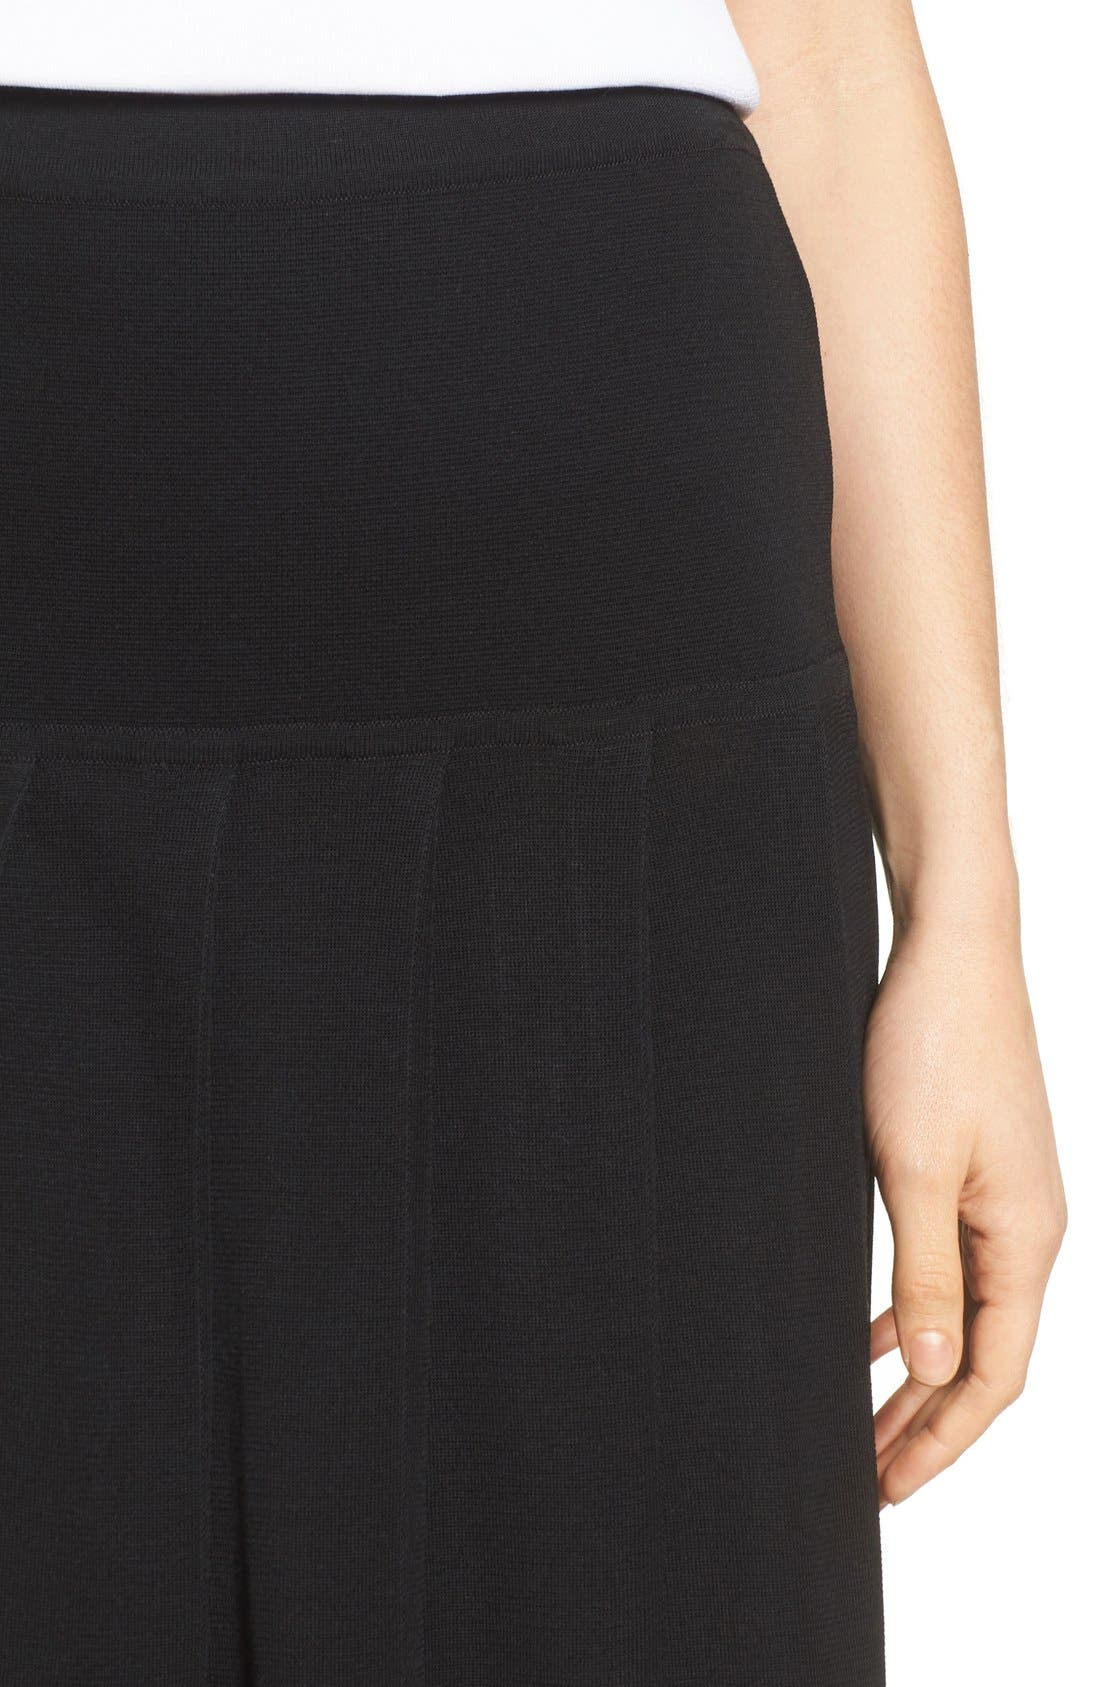 Pleated Midi Skirt,                             Alternate thumbnail 10, color,                             BLACK